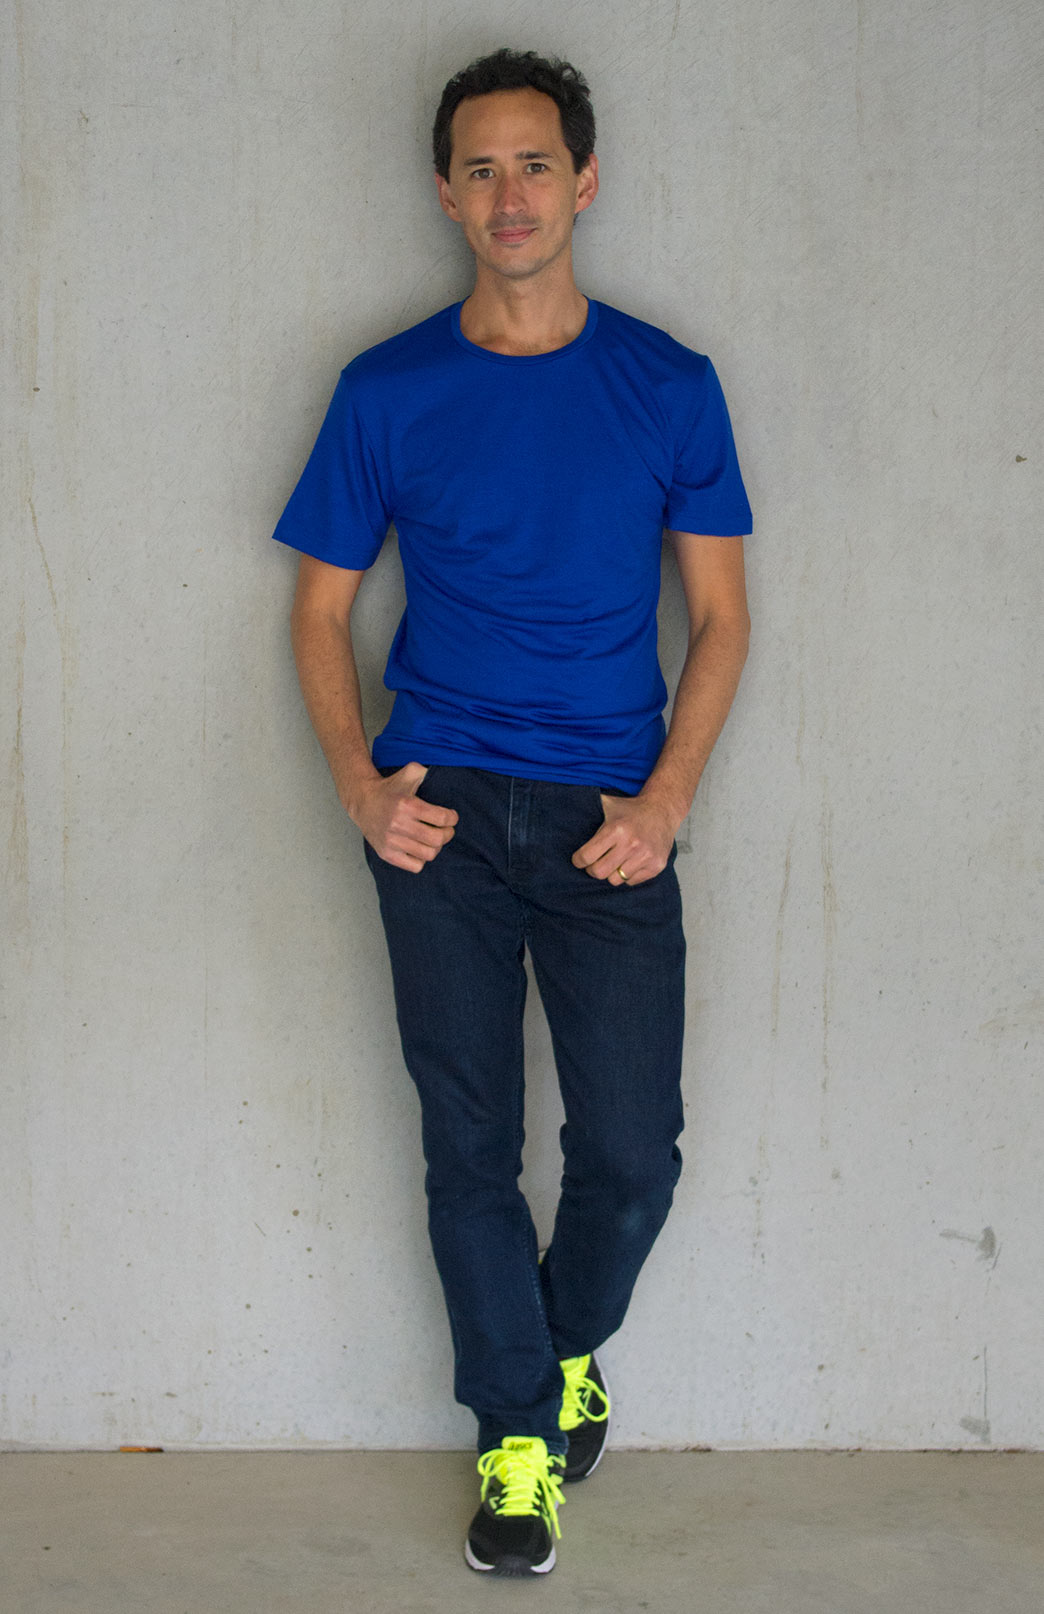 Short Sleeved Crew Neck Top - Lightweight (~170g) - Men's Electric Blue Pure Merino Wool Lightweight Short Sleeved Thermal Top with Crew Neckline - Smitten Merino Tasmania Australia